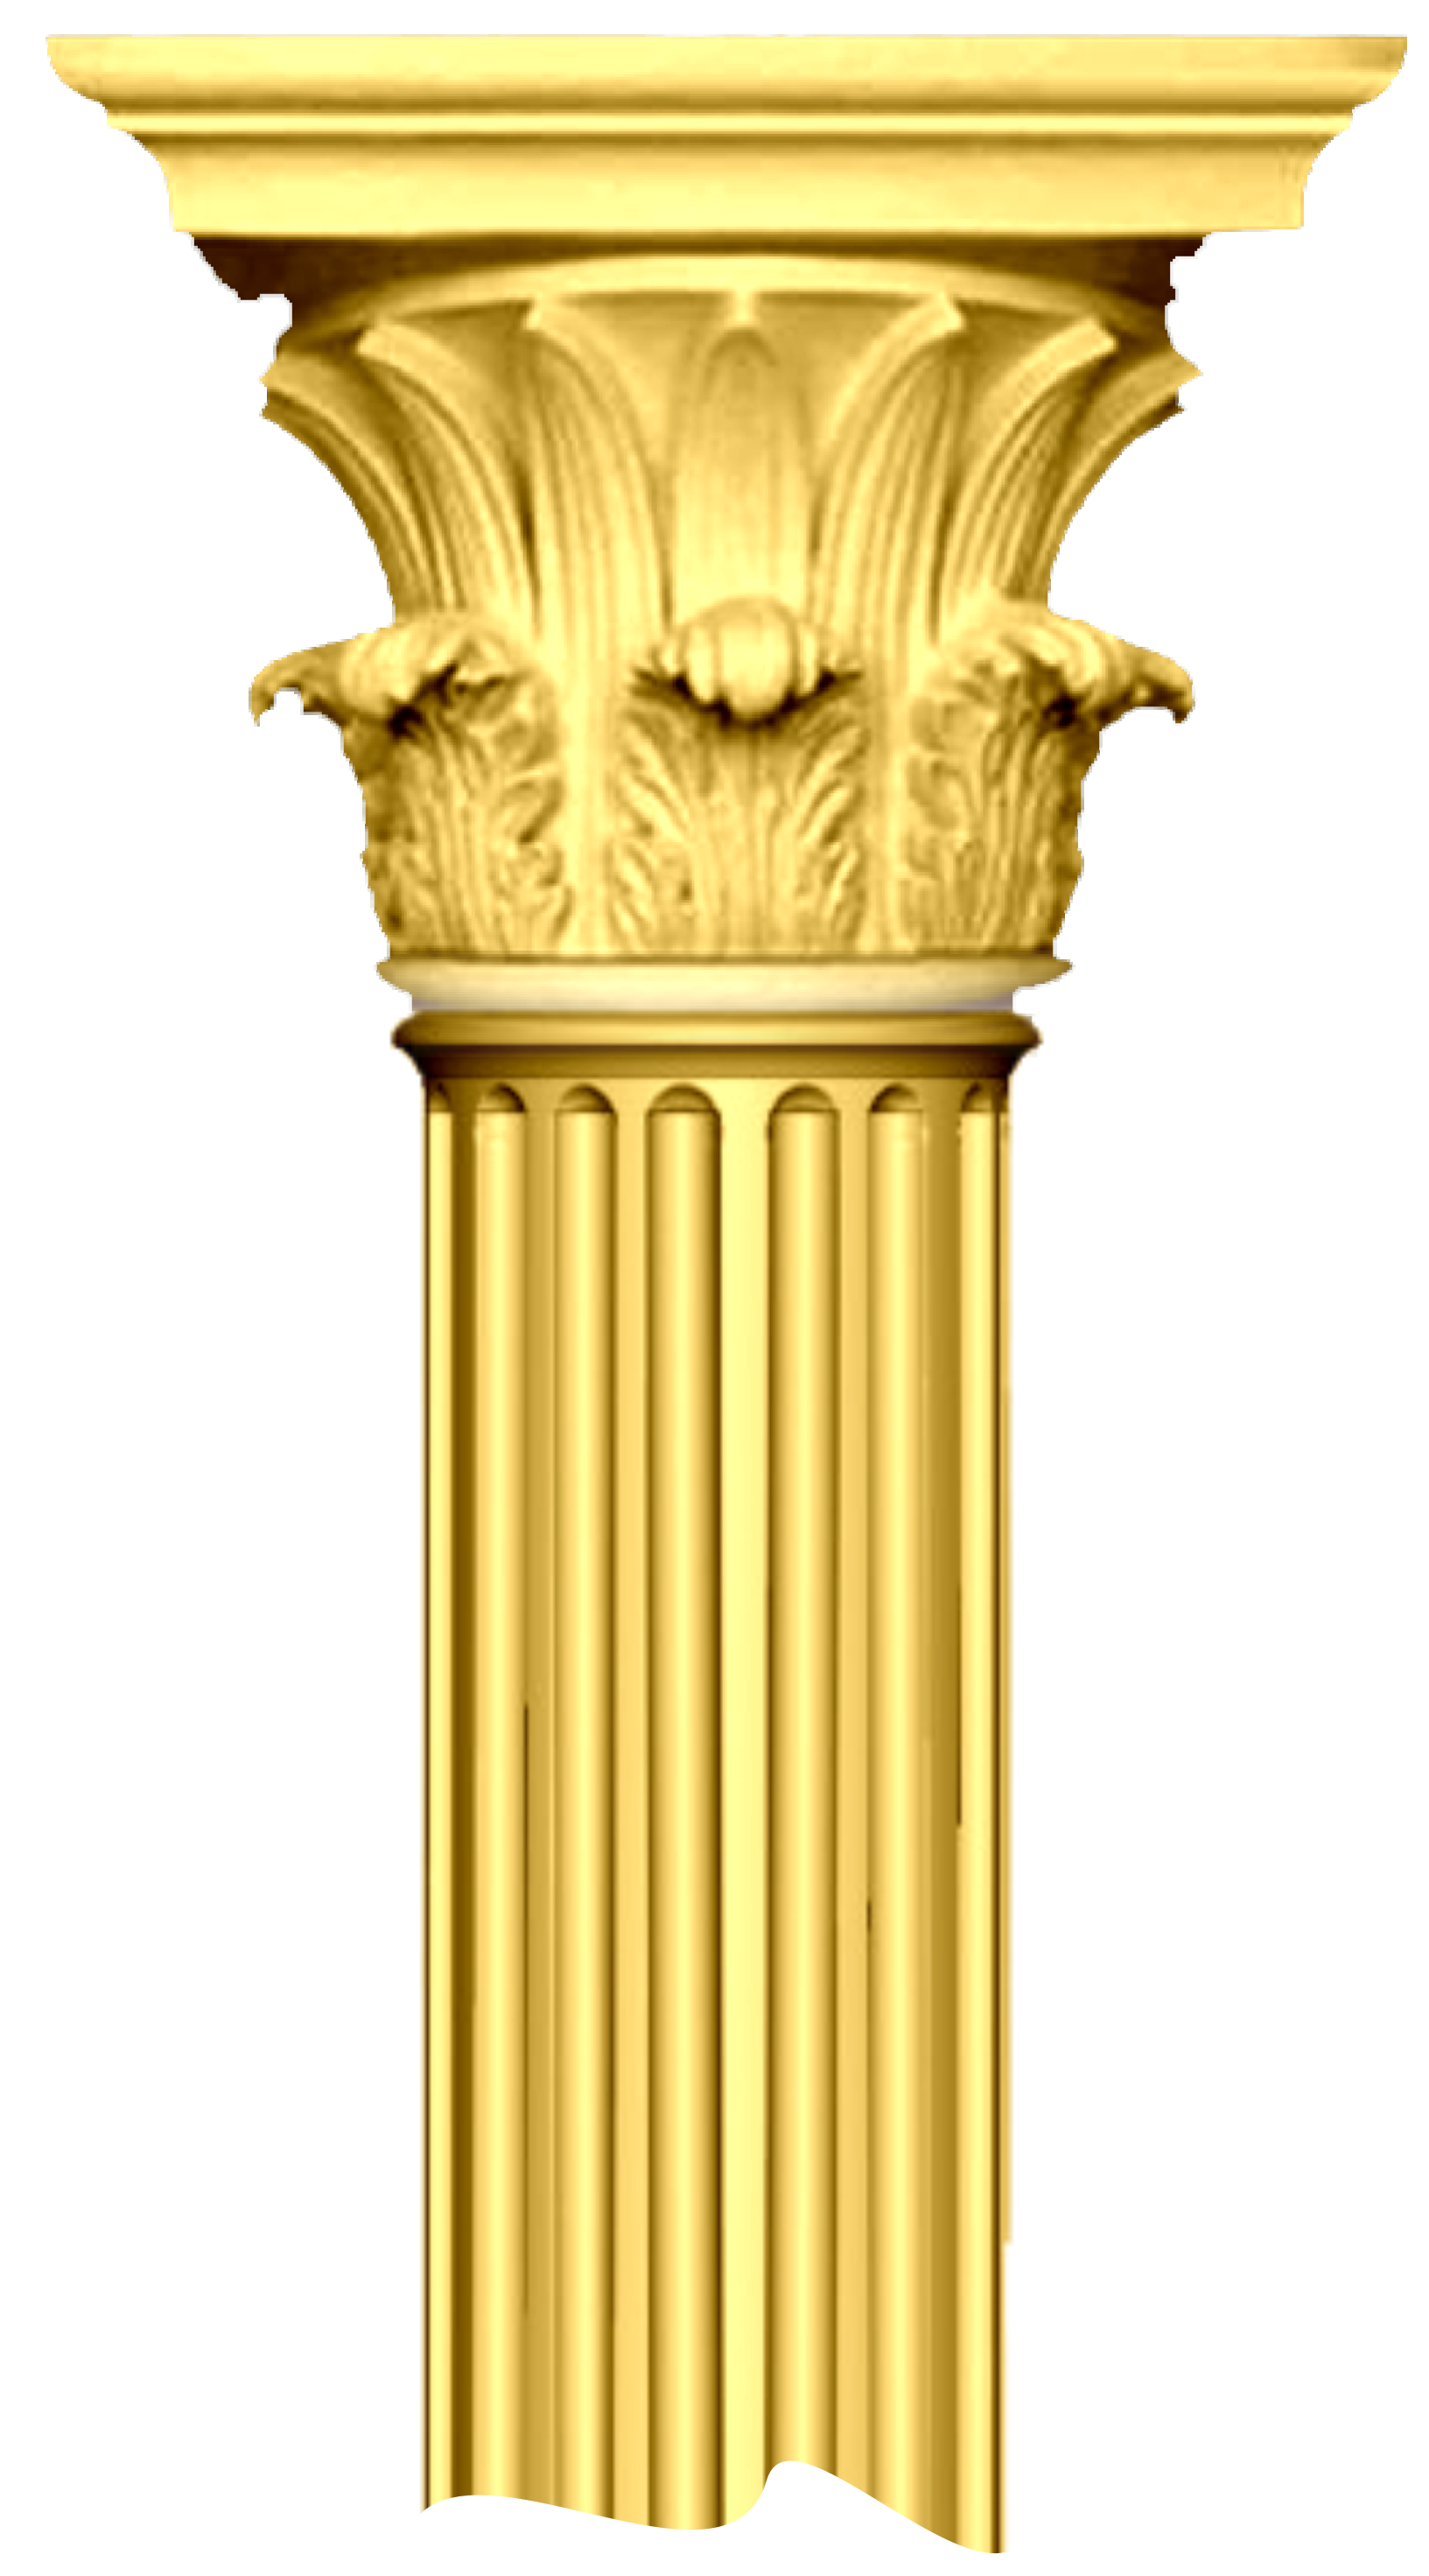 Column clipart. Broken free images at